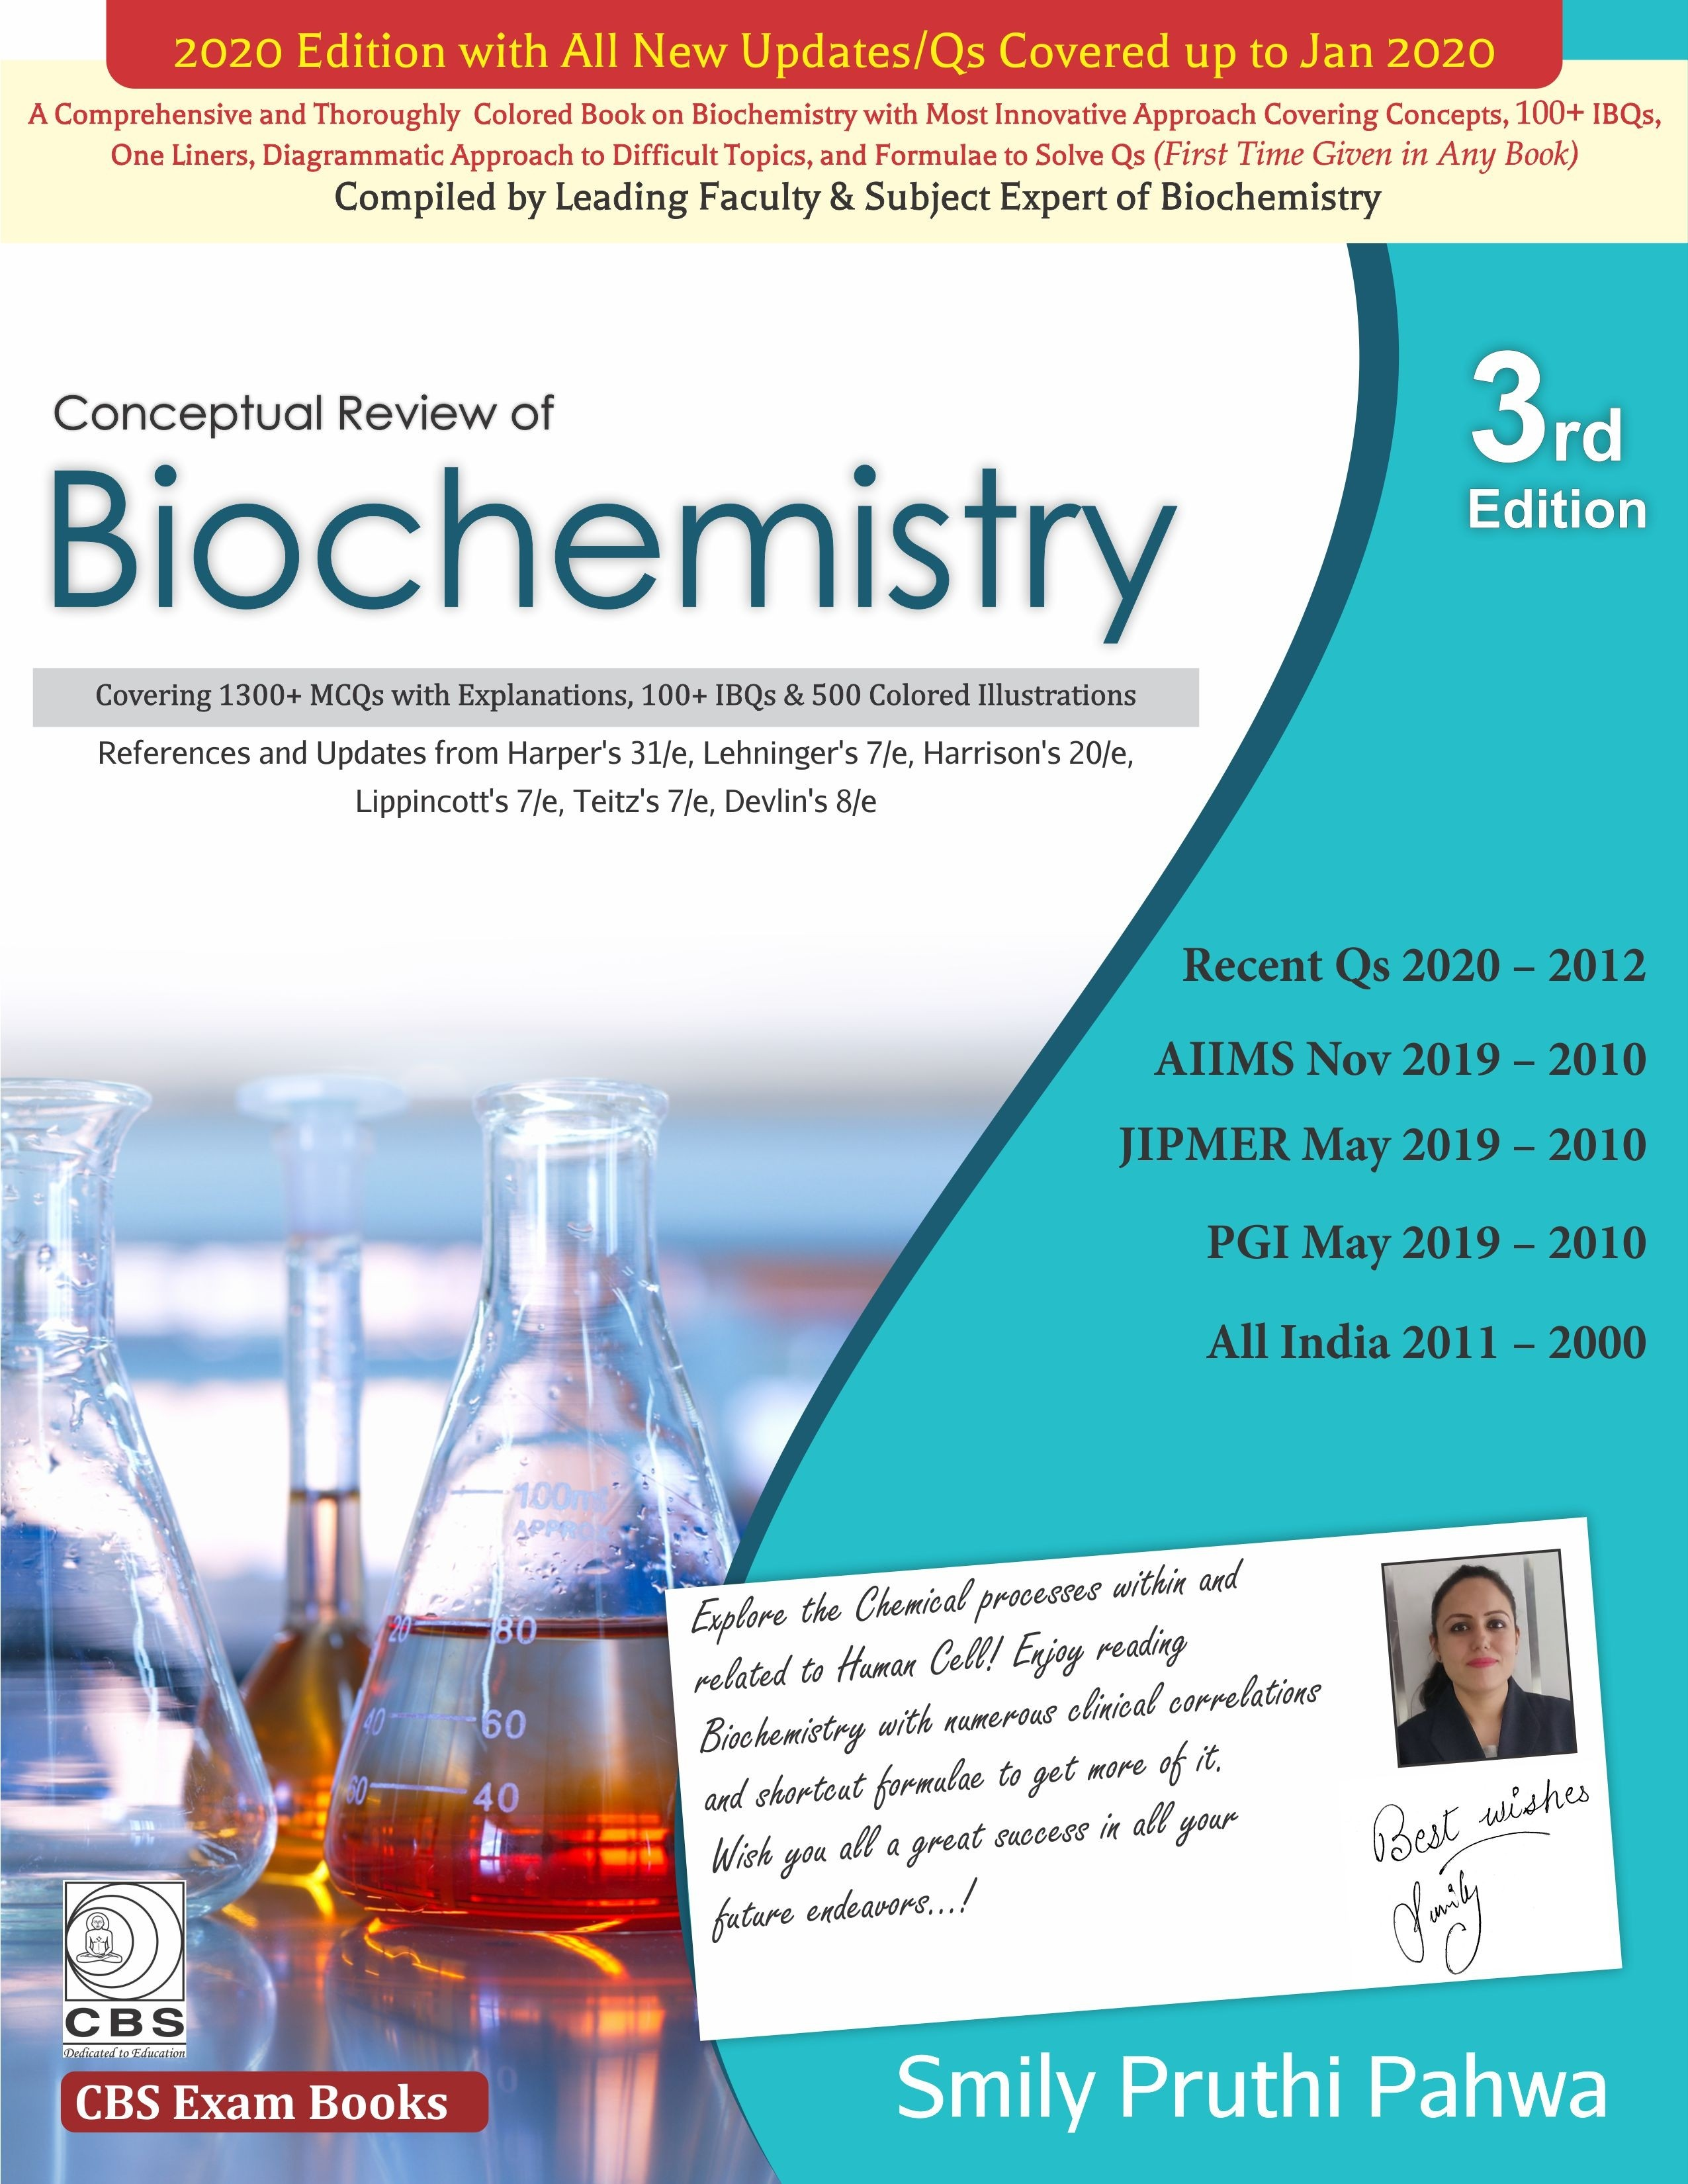 Conceptual Review of Biochemistry-9788194523413-Smily Pruthi Pahwa